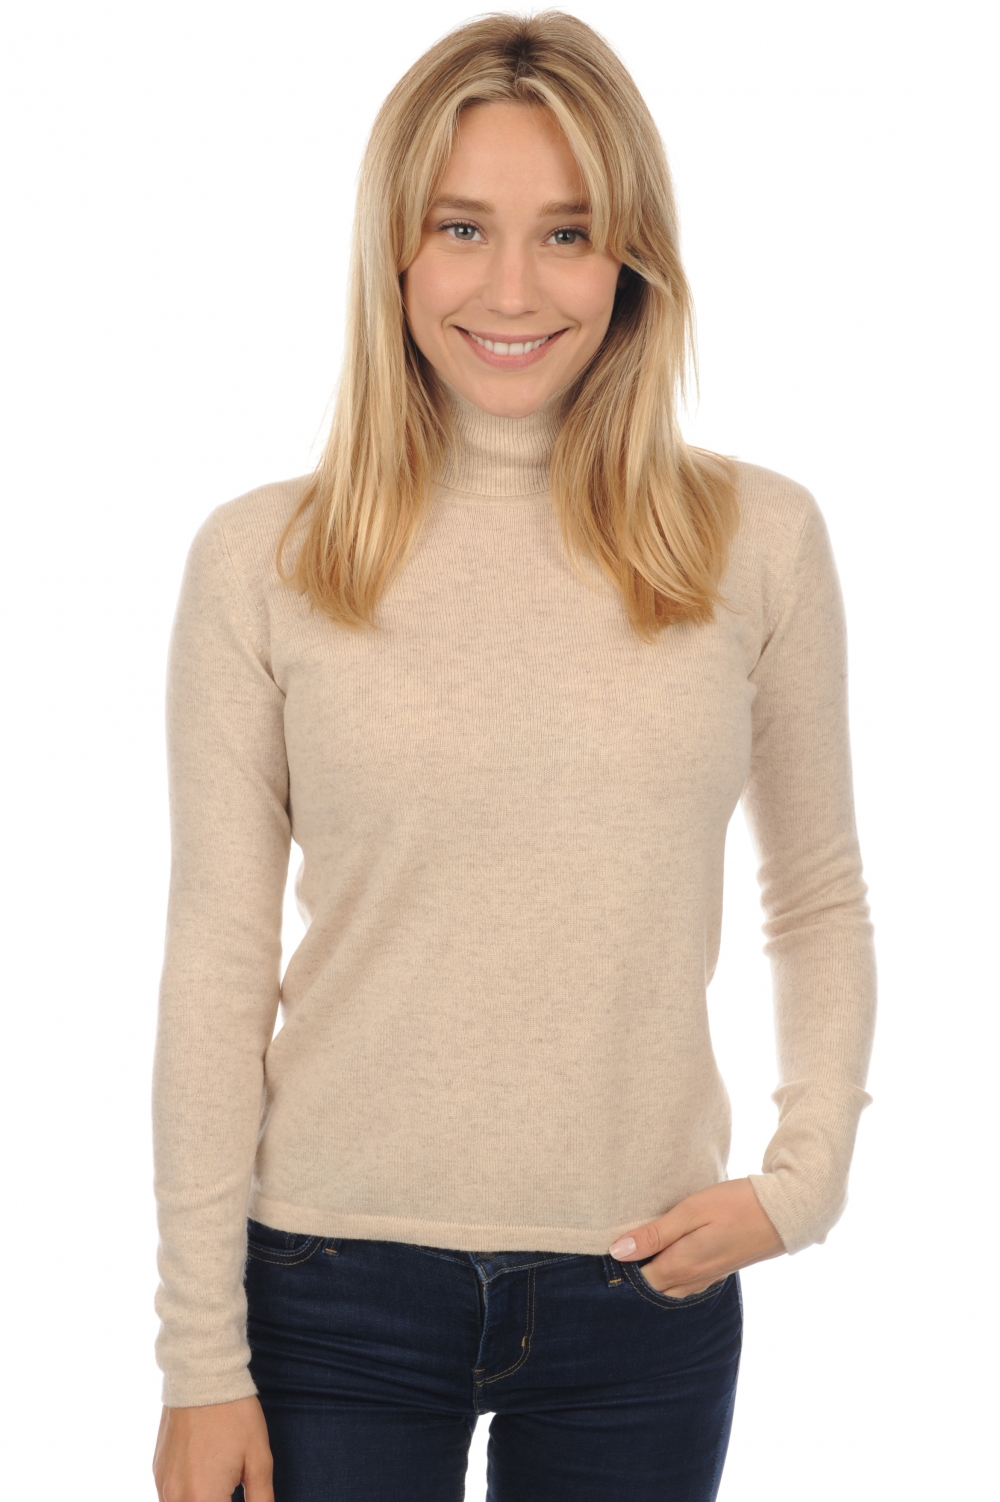 cashmere ladies polo necks jade ecru chine xs